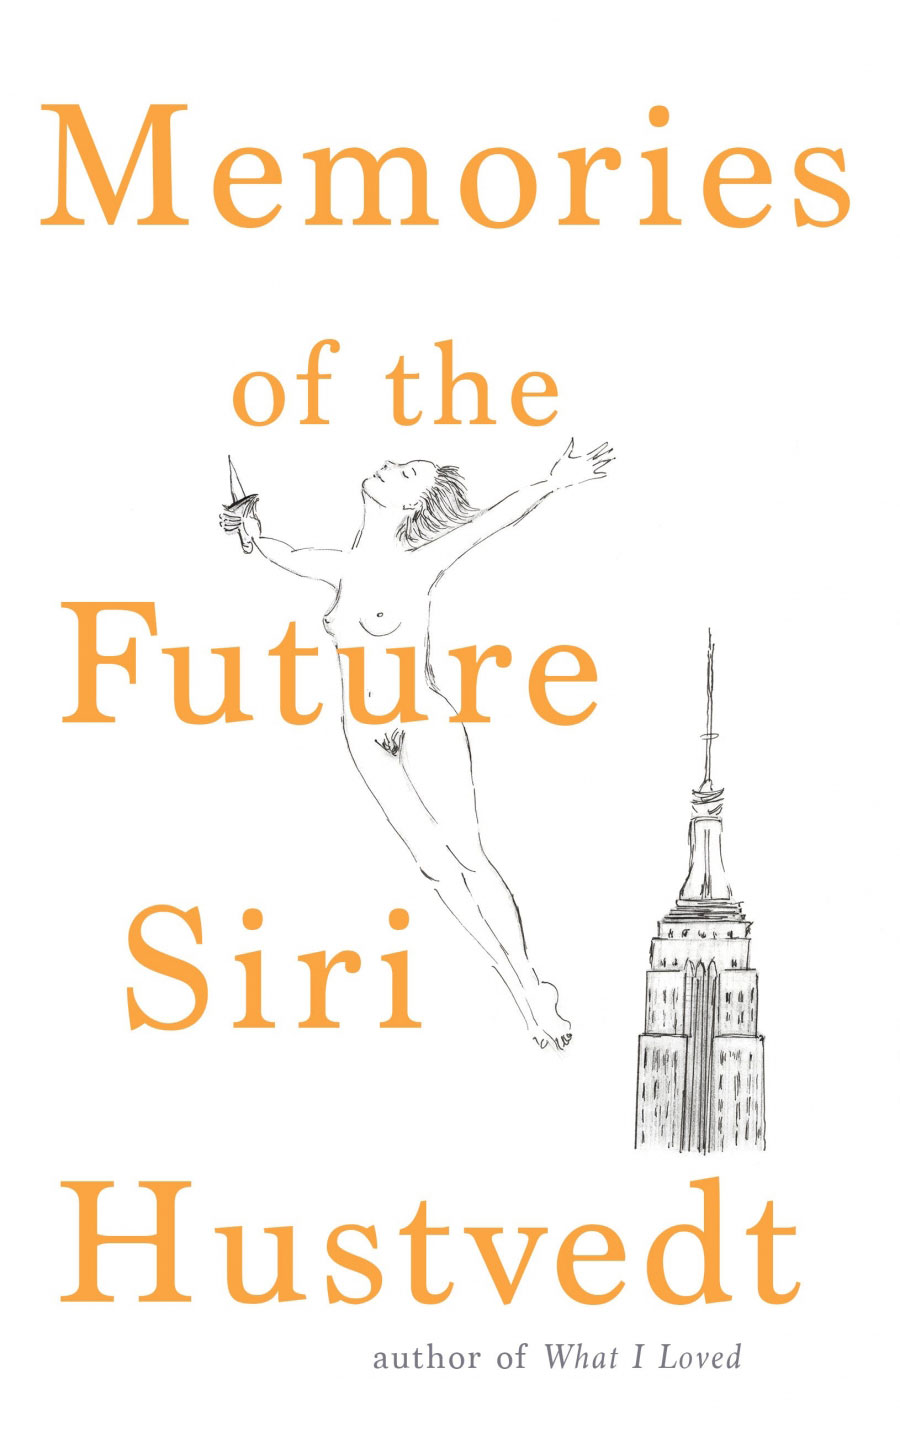 memories-of-the-future-siri-hustvedtxl